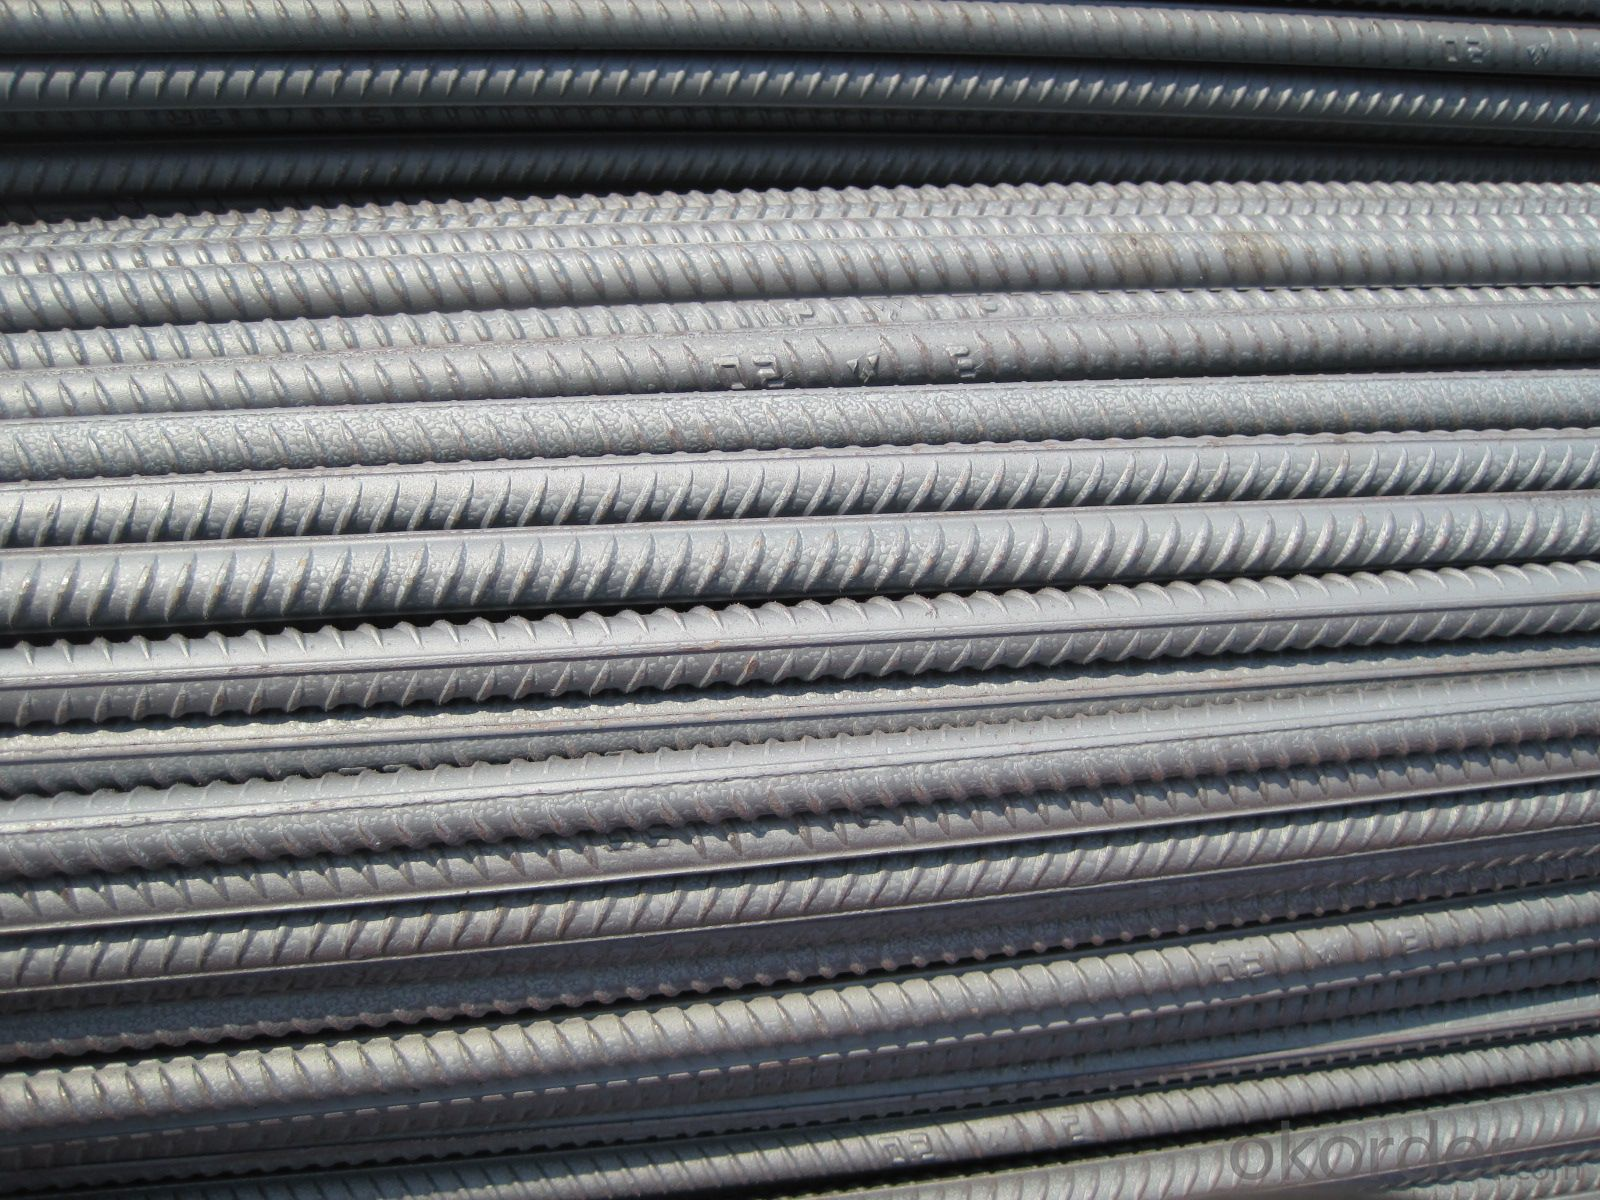 BS4449 G460 Reinforcing Deformed Steel Bar, Rebar, Deformed Rebar